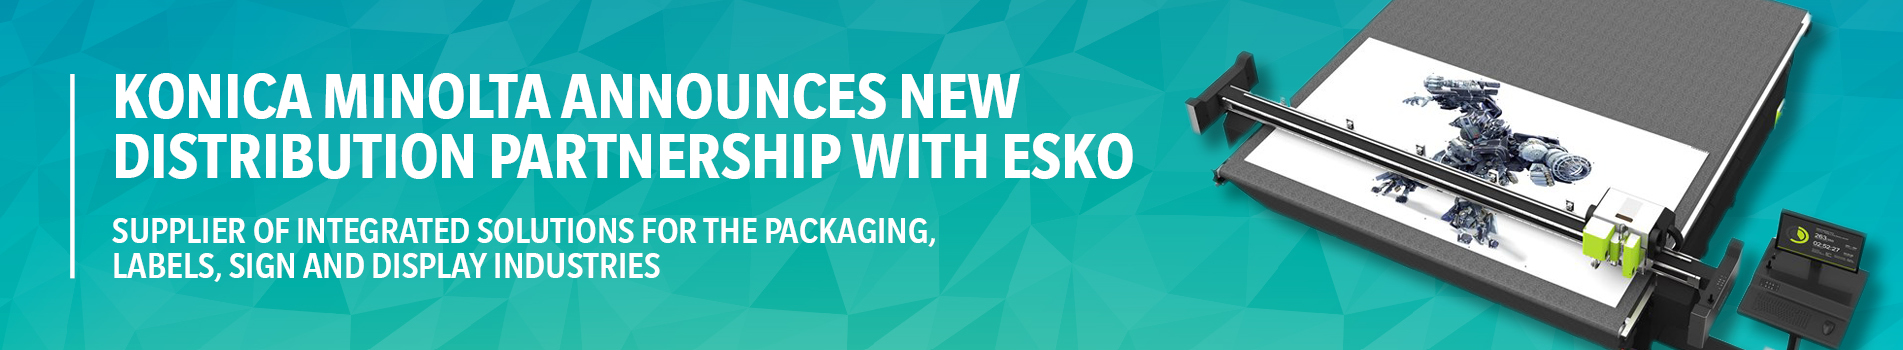 Konica Minolta Announces New Distribution Partnership with Esko